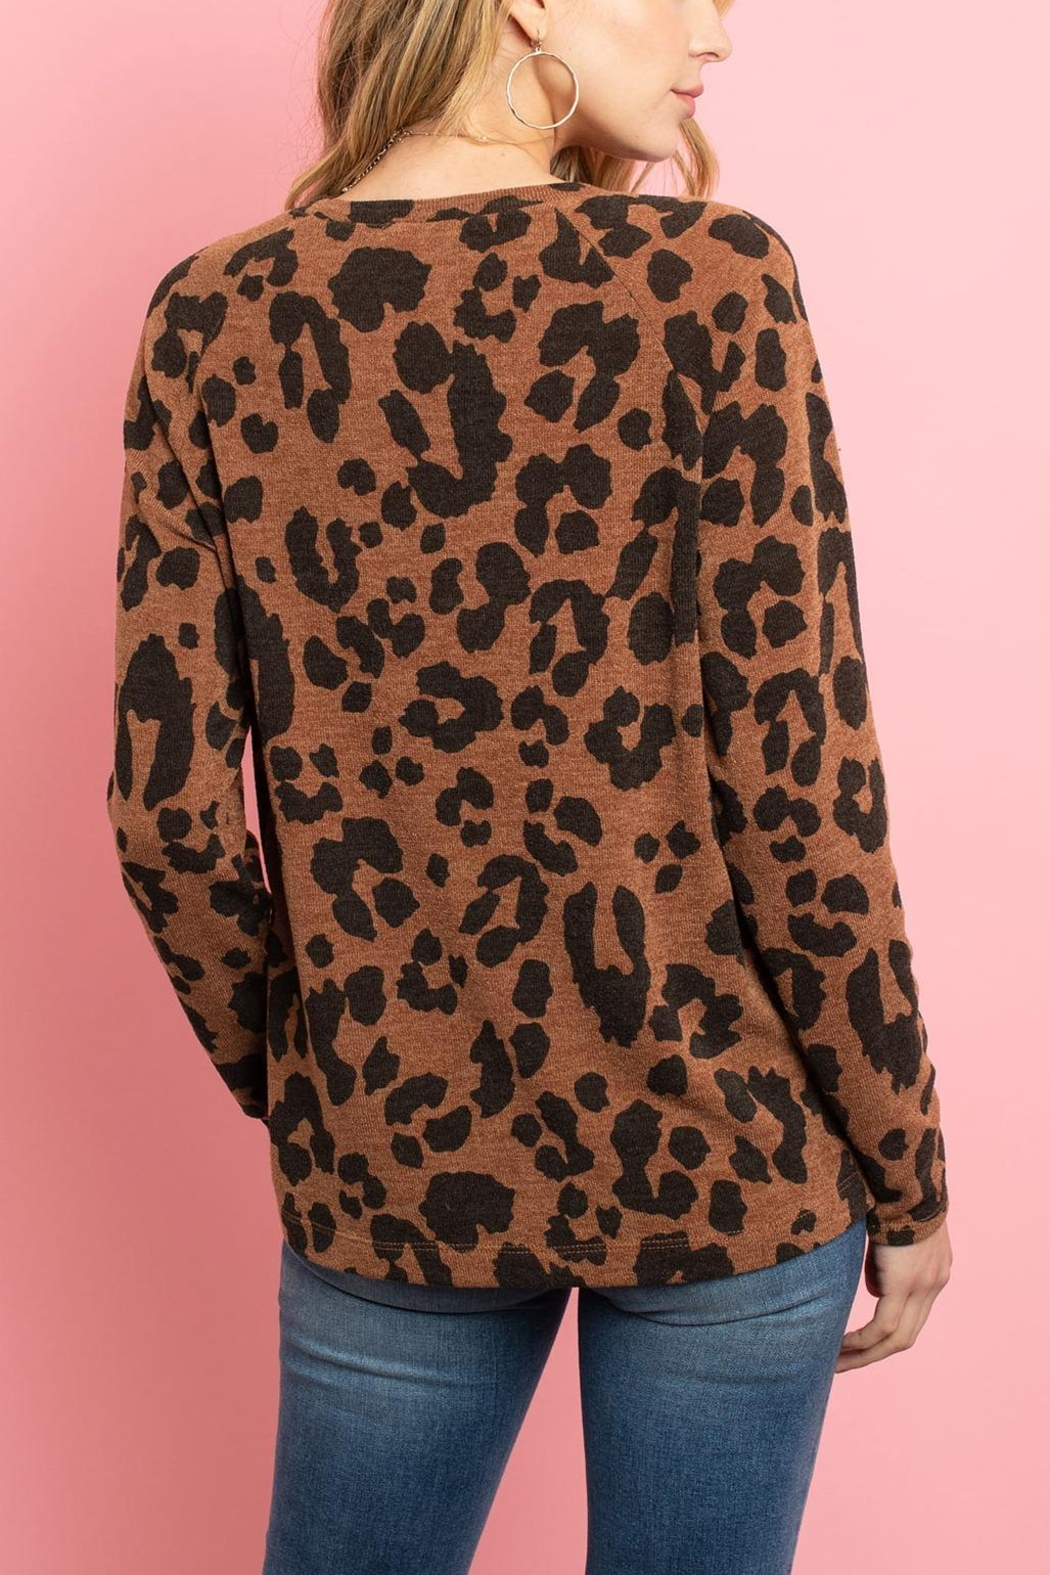 Riah Fashion Lightweight-Leopard -Print-Pullover - Front Full Image